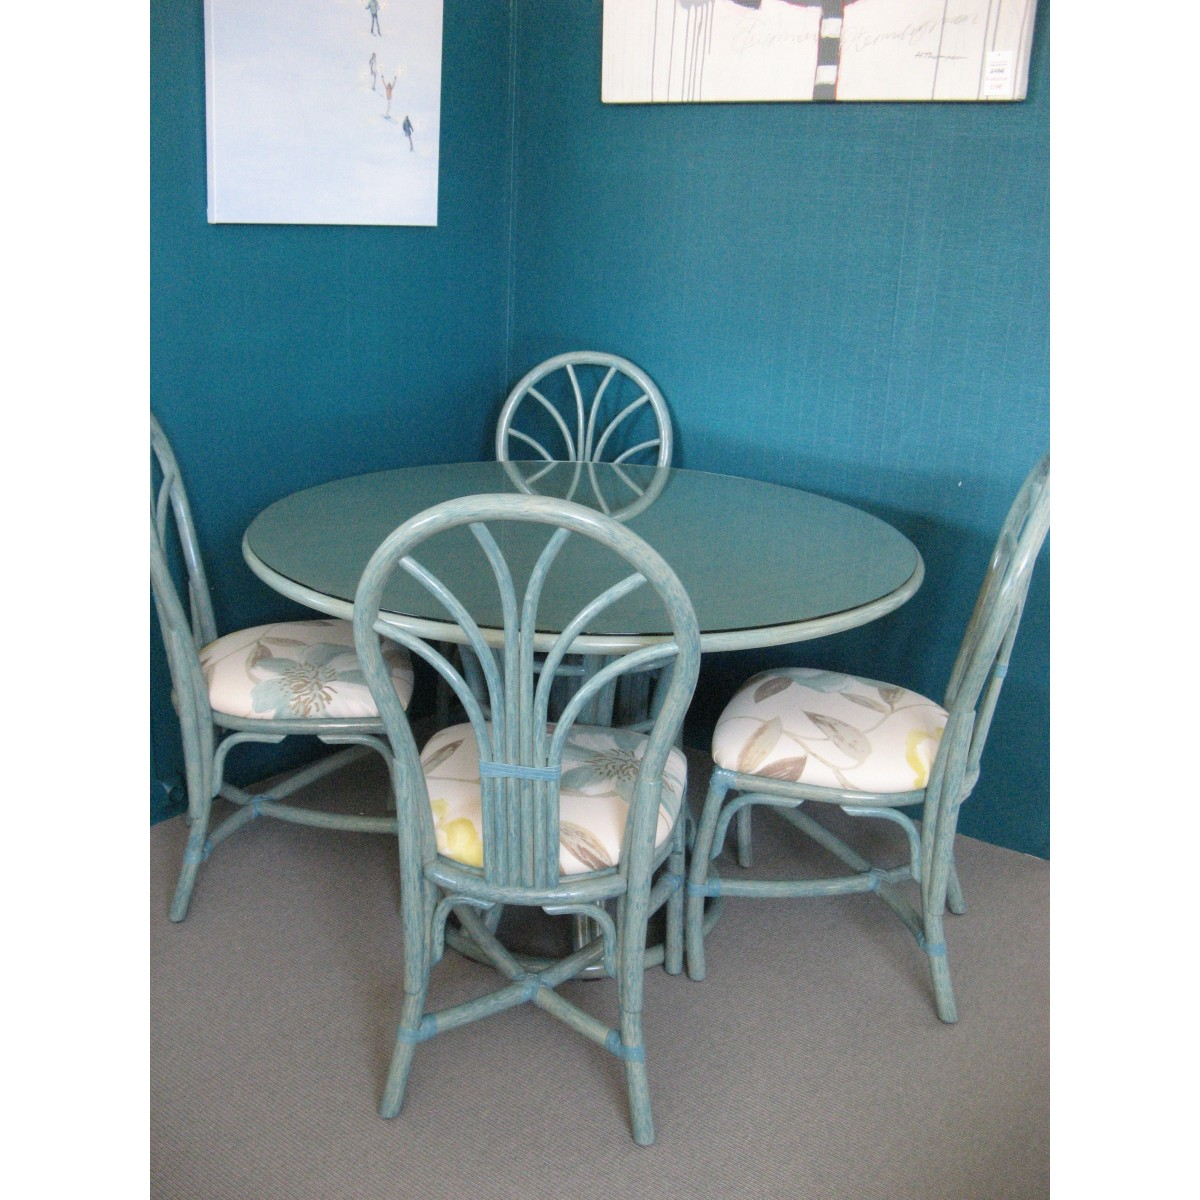 Table Taill rotin bleue